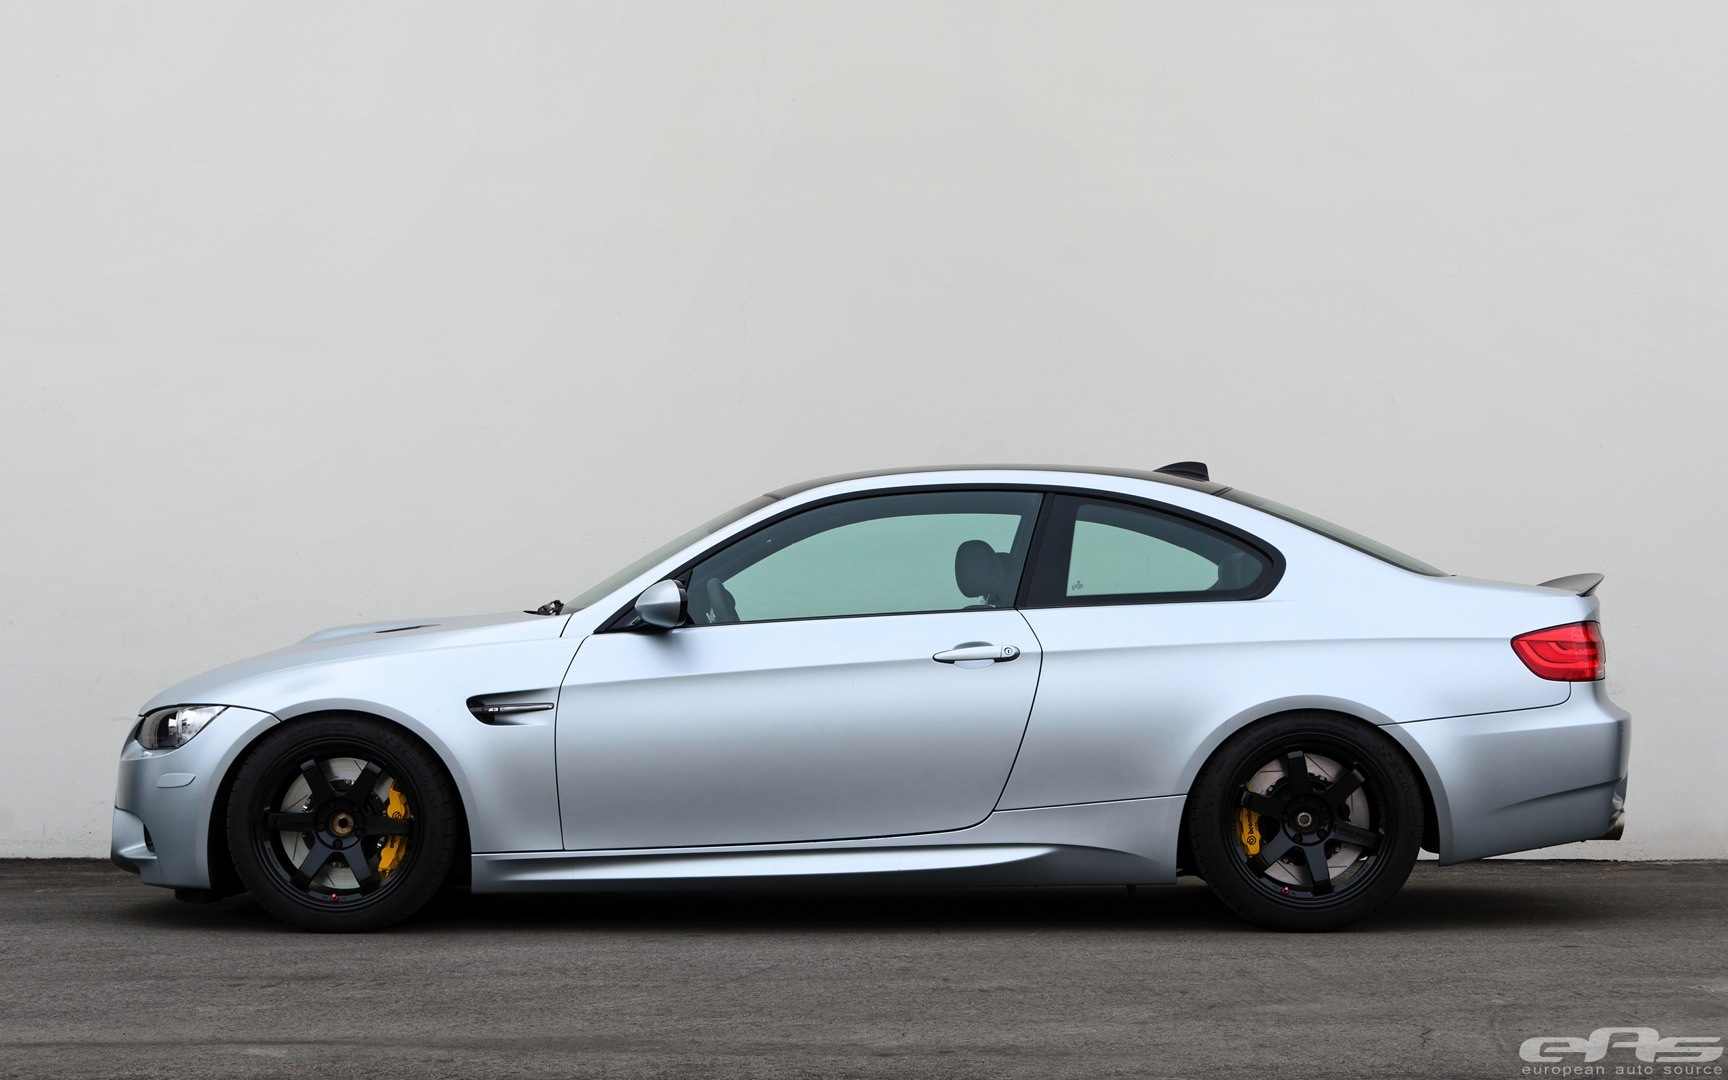 Bmw E92 M3 Gets Buff At Eas Autoevolution